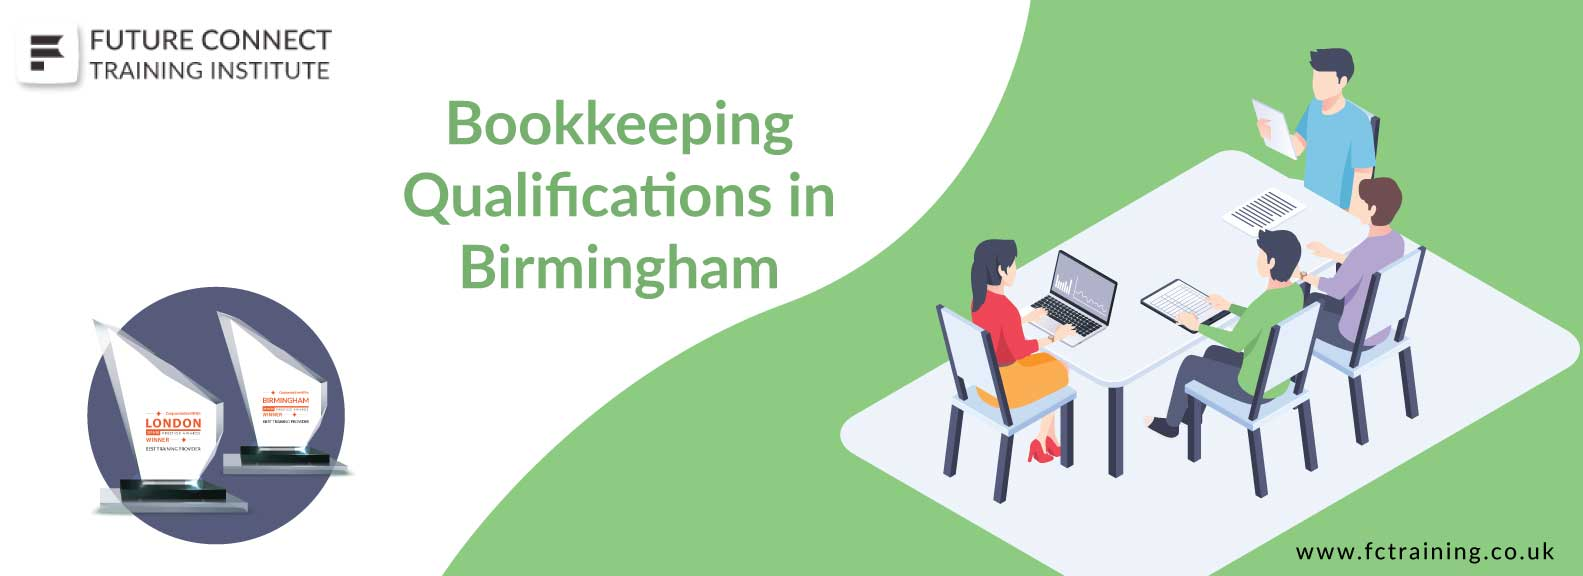 Bookkeeping Qualifications in Birmingham